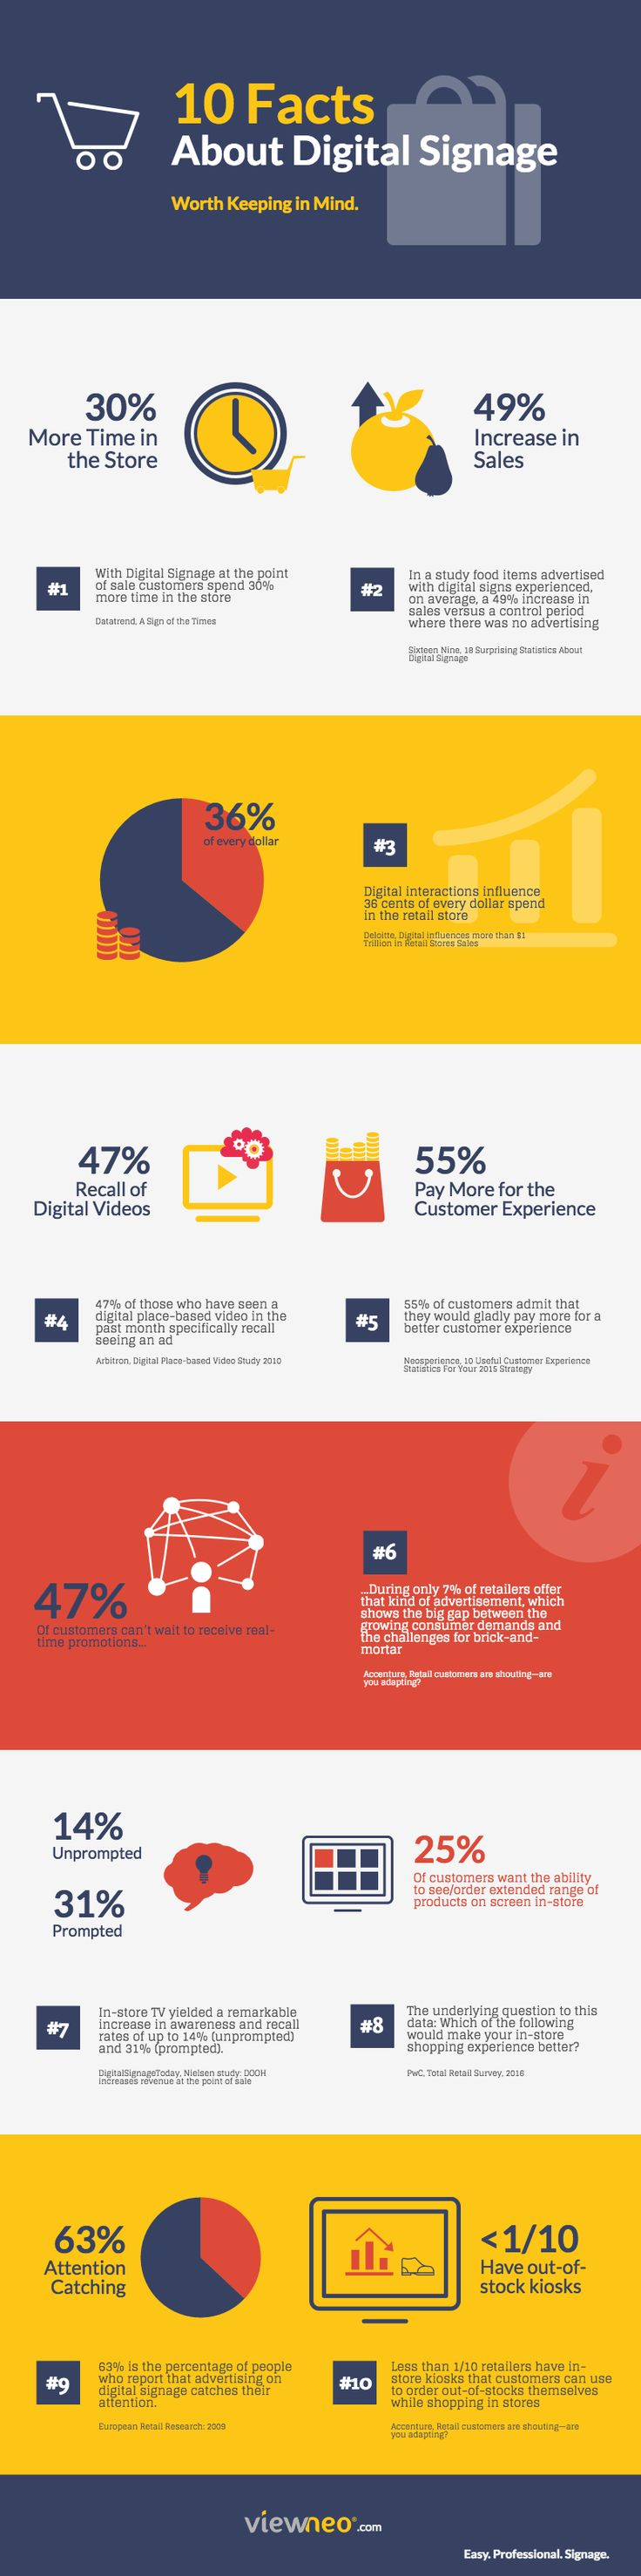 Facts about Digital Signage. How customers react when it comes to digitization